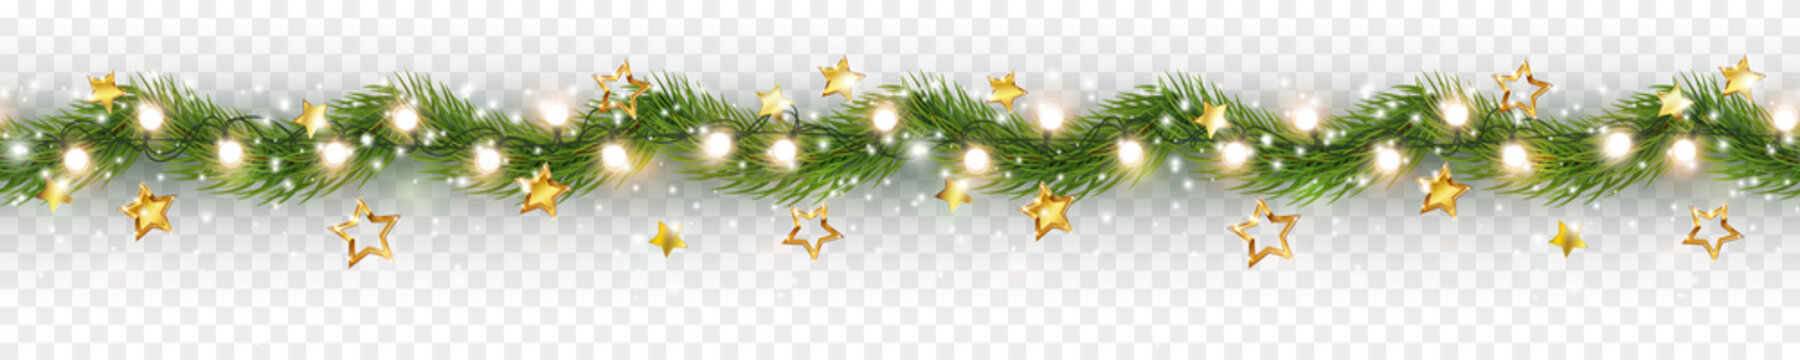 Border with green fir branches, gold stars, lights isolated on transparent background. Pine, xmas evergreen plants seamless banner. Vector Christmas tree garland decoration